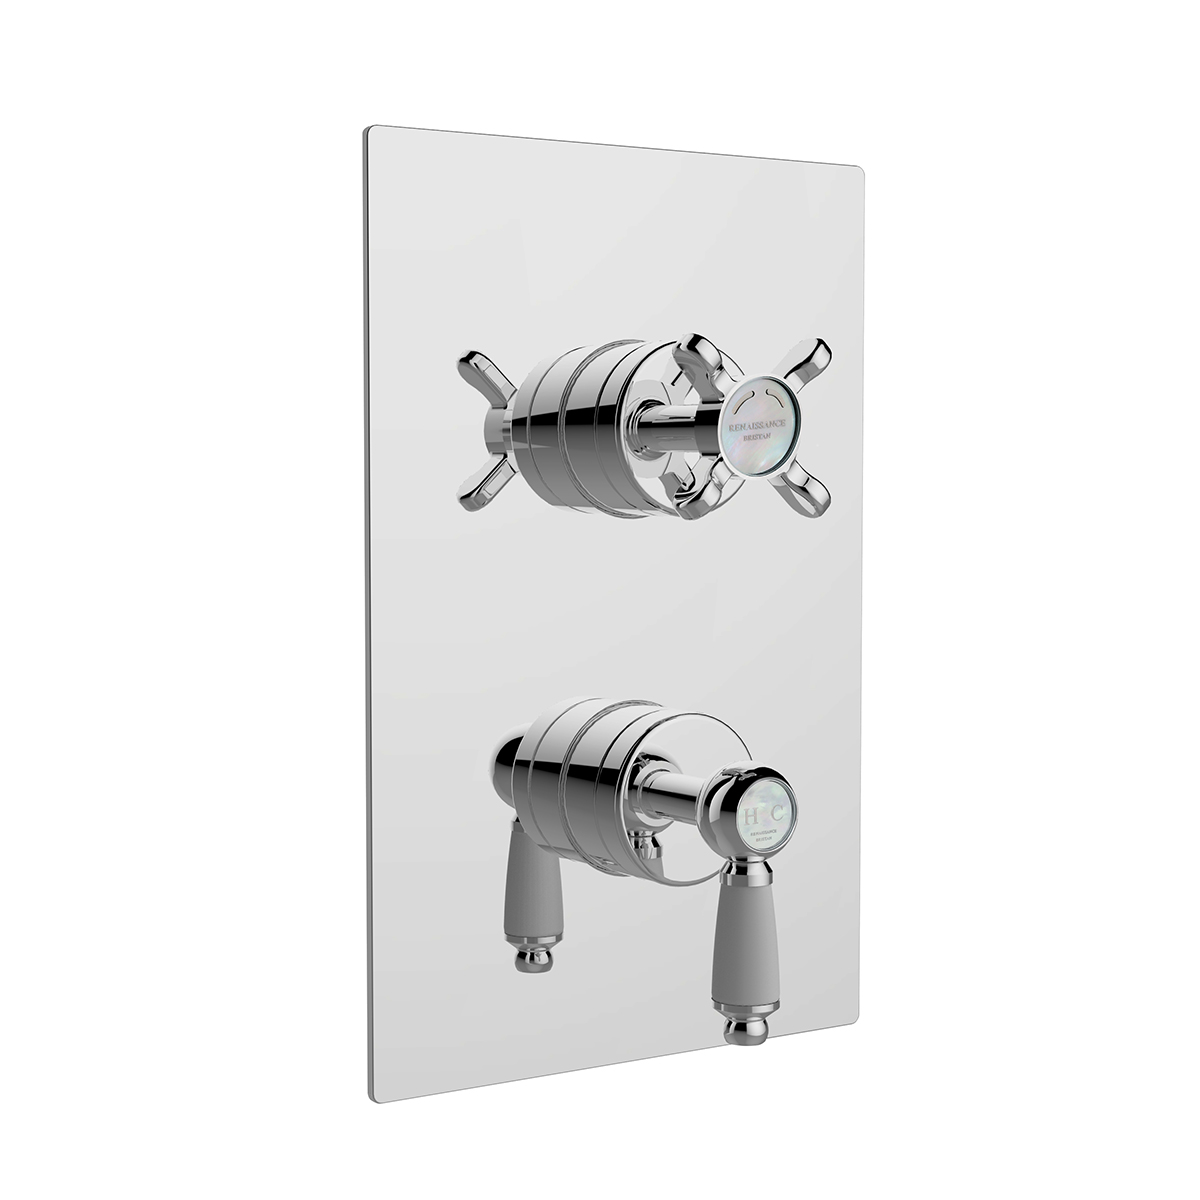 Recessed Shower Valve with Diverter